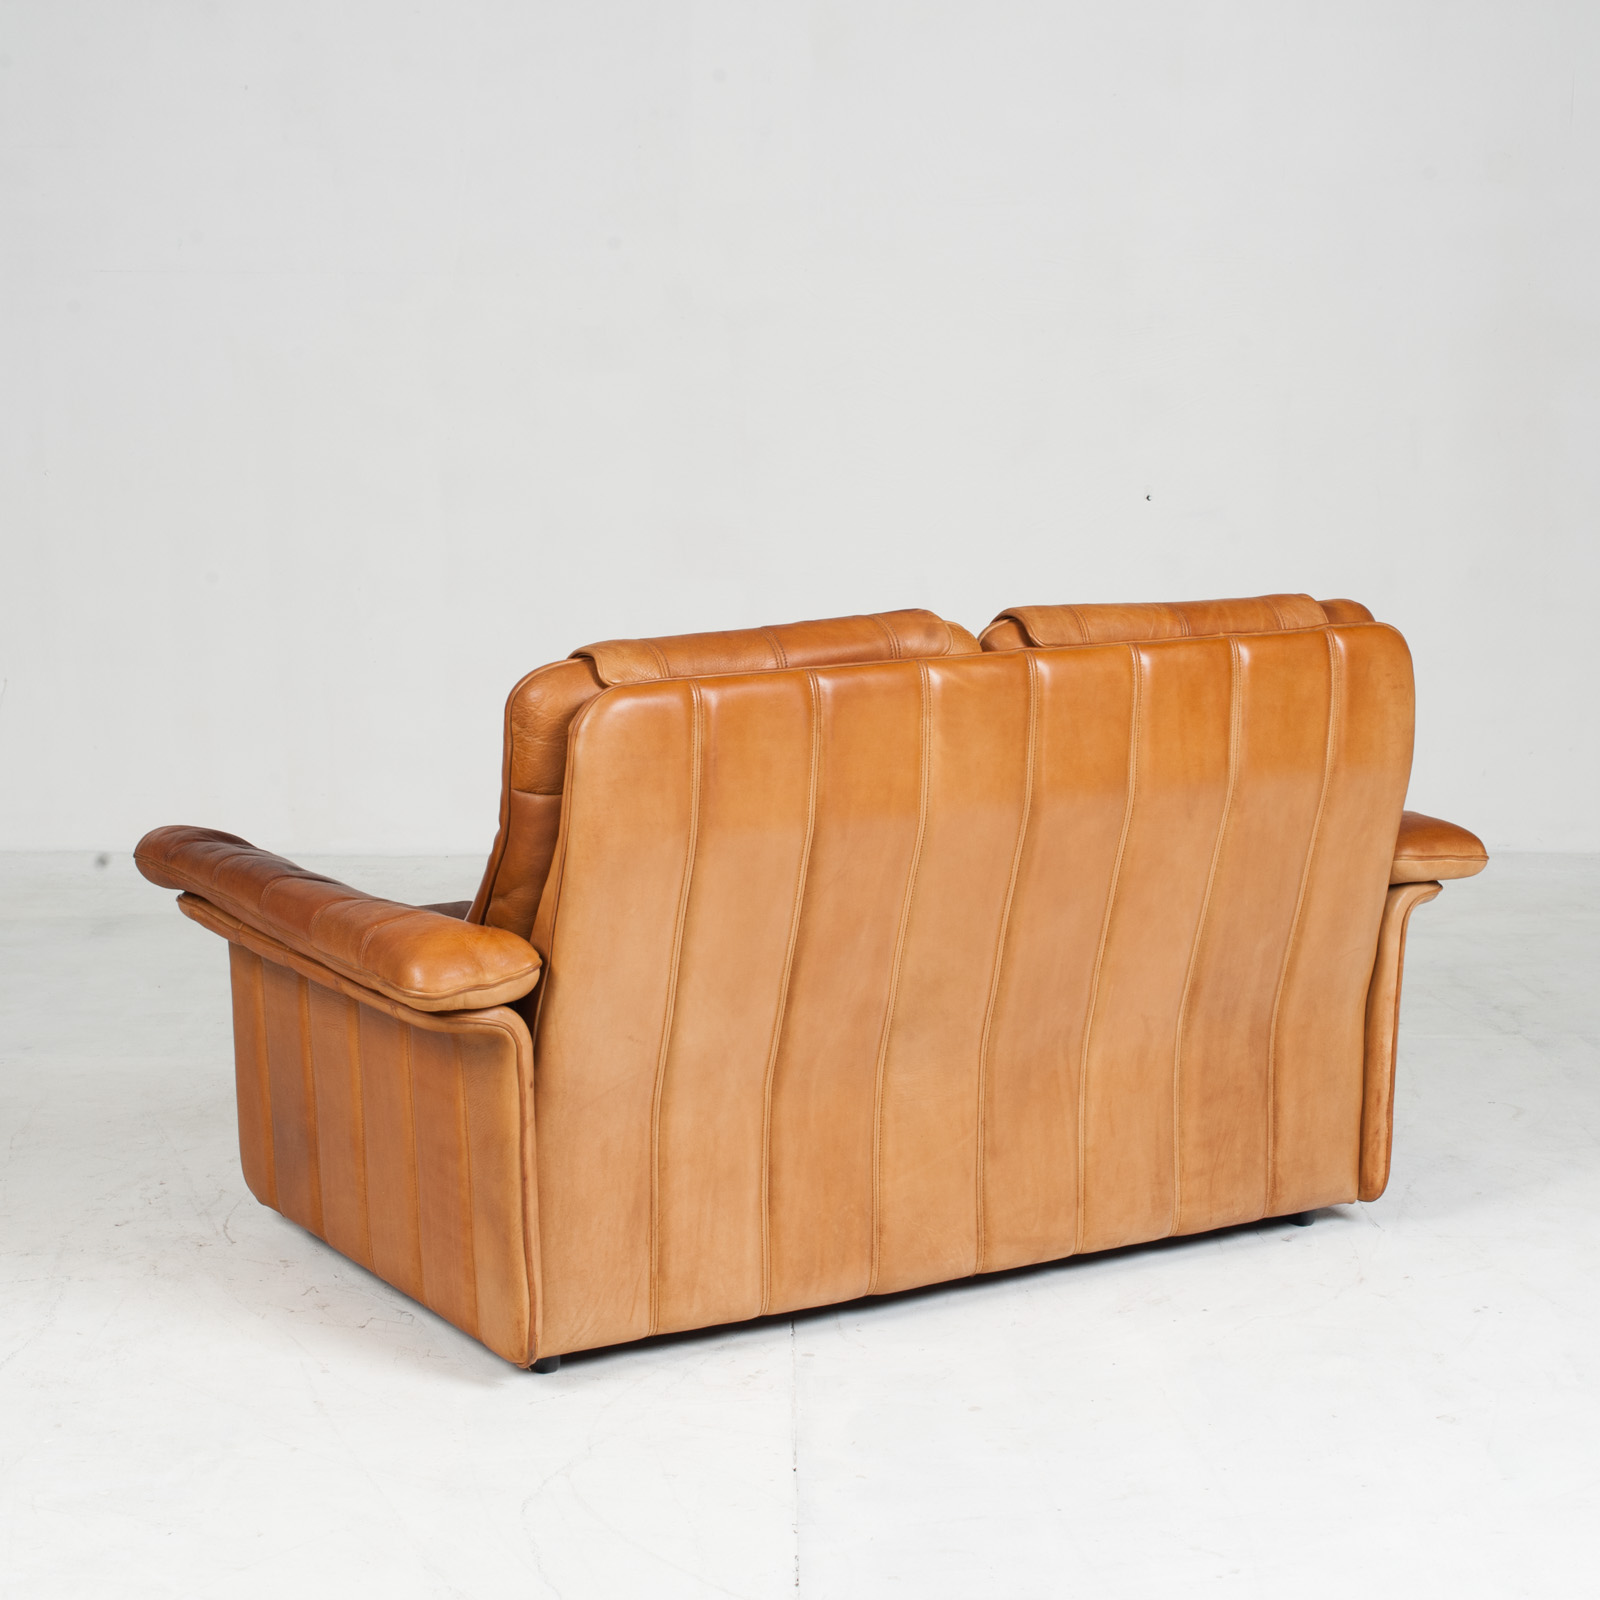 2 Seat Sofa By De Sede In Tan Leather 1970s Switzerland 12